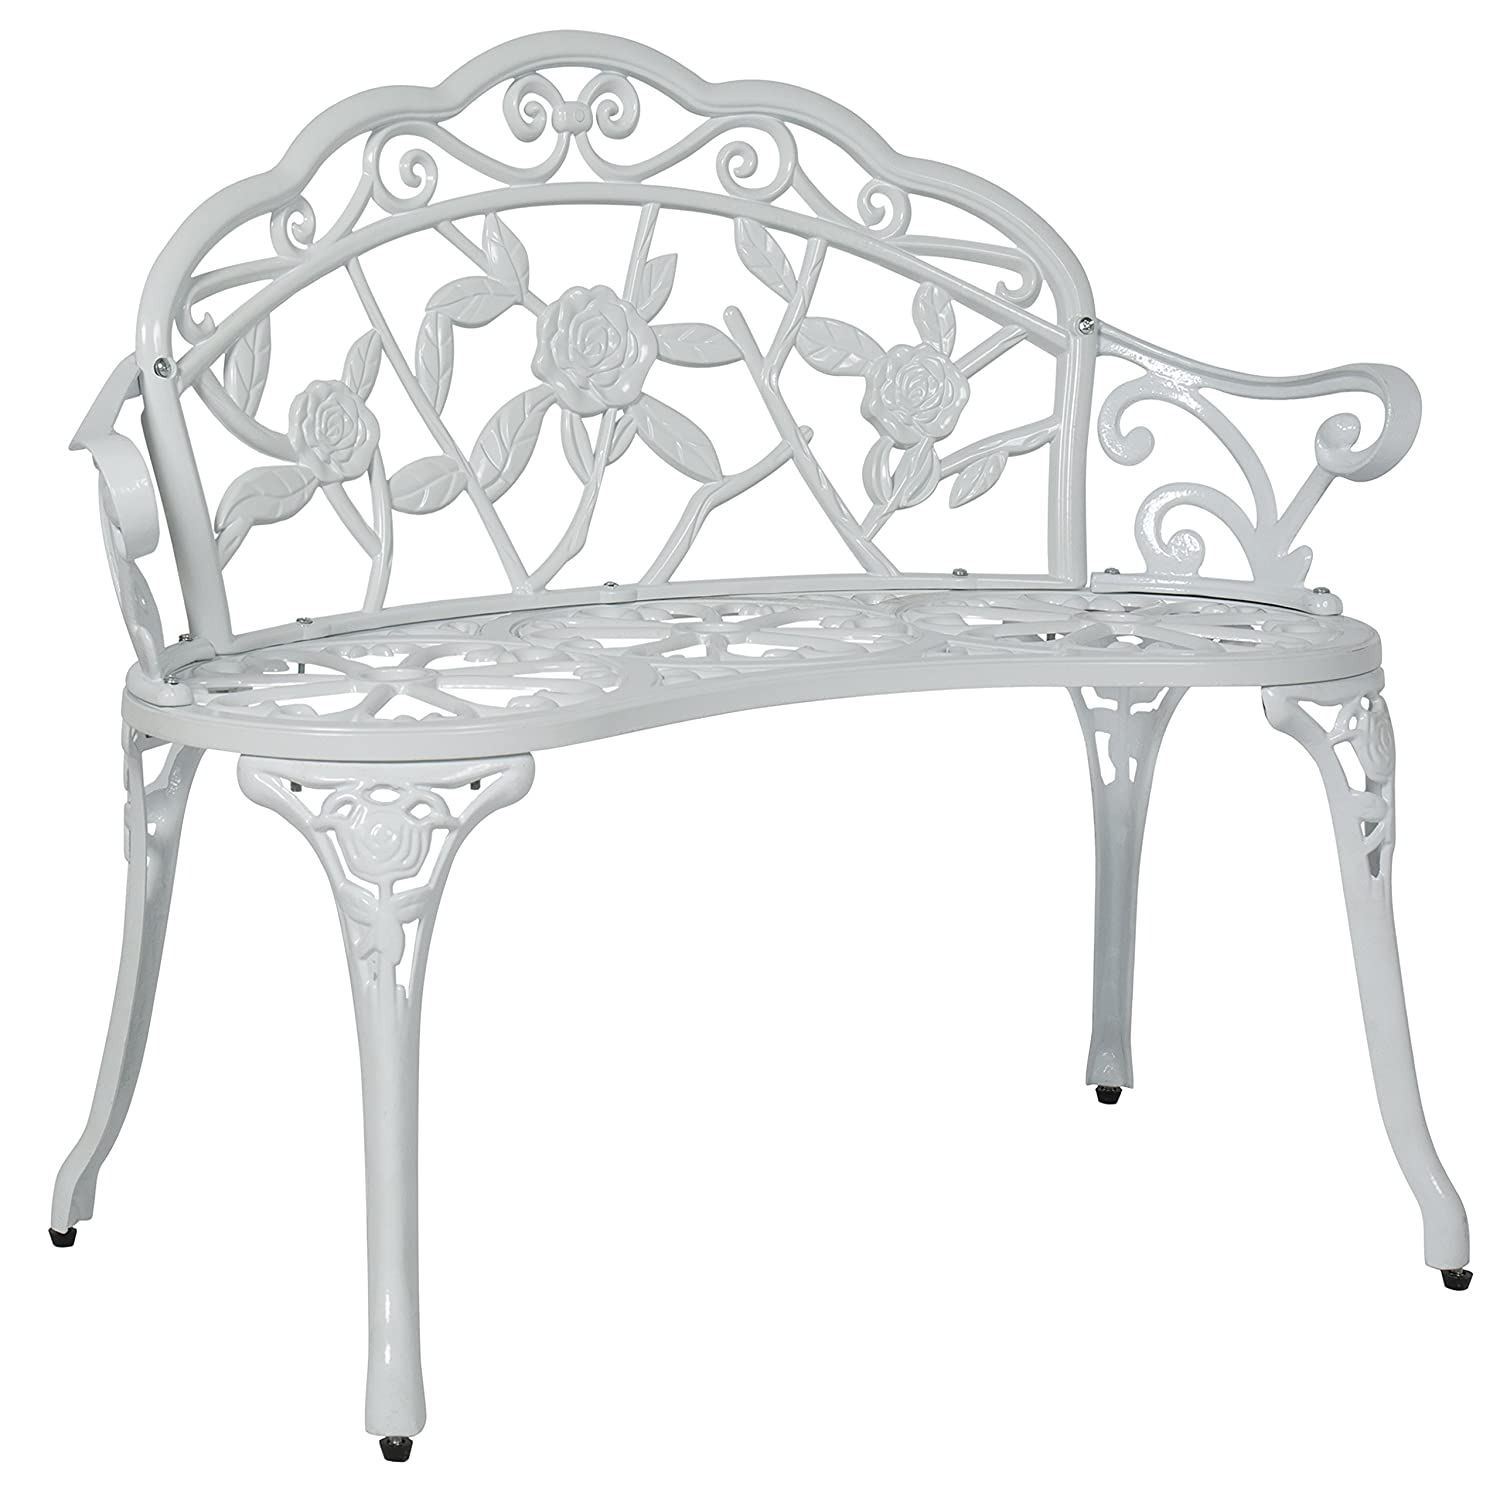 Best Choice Products Floral Rose Accented Metal Garden Patio Bench w Antique Finish – White